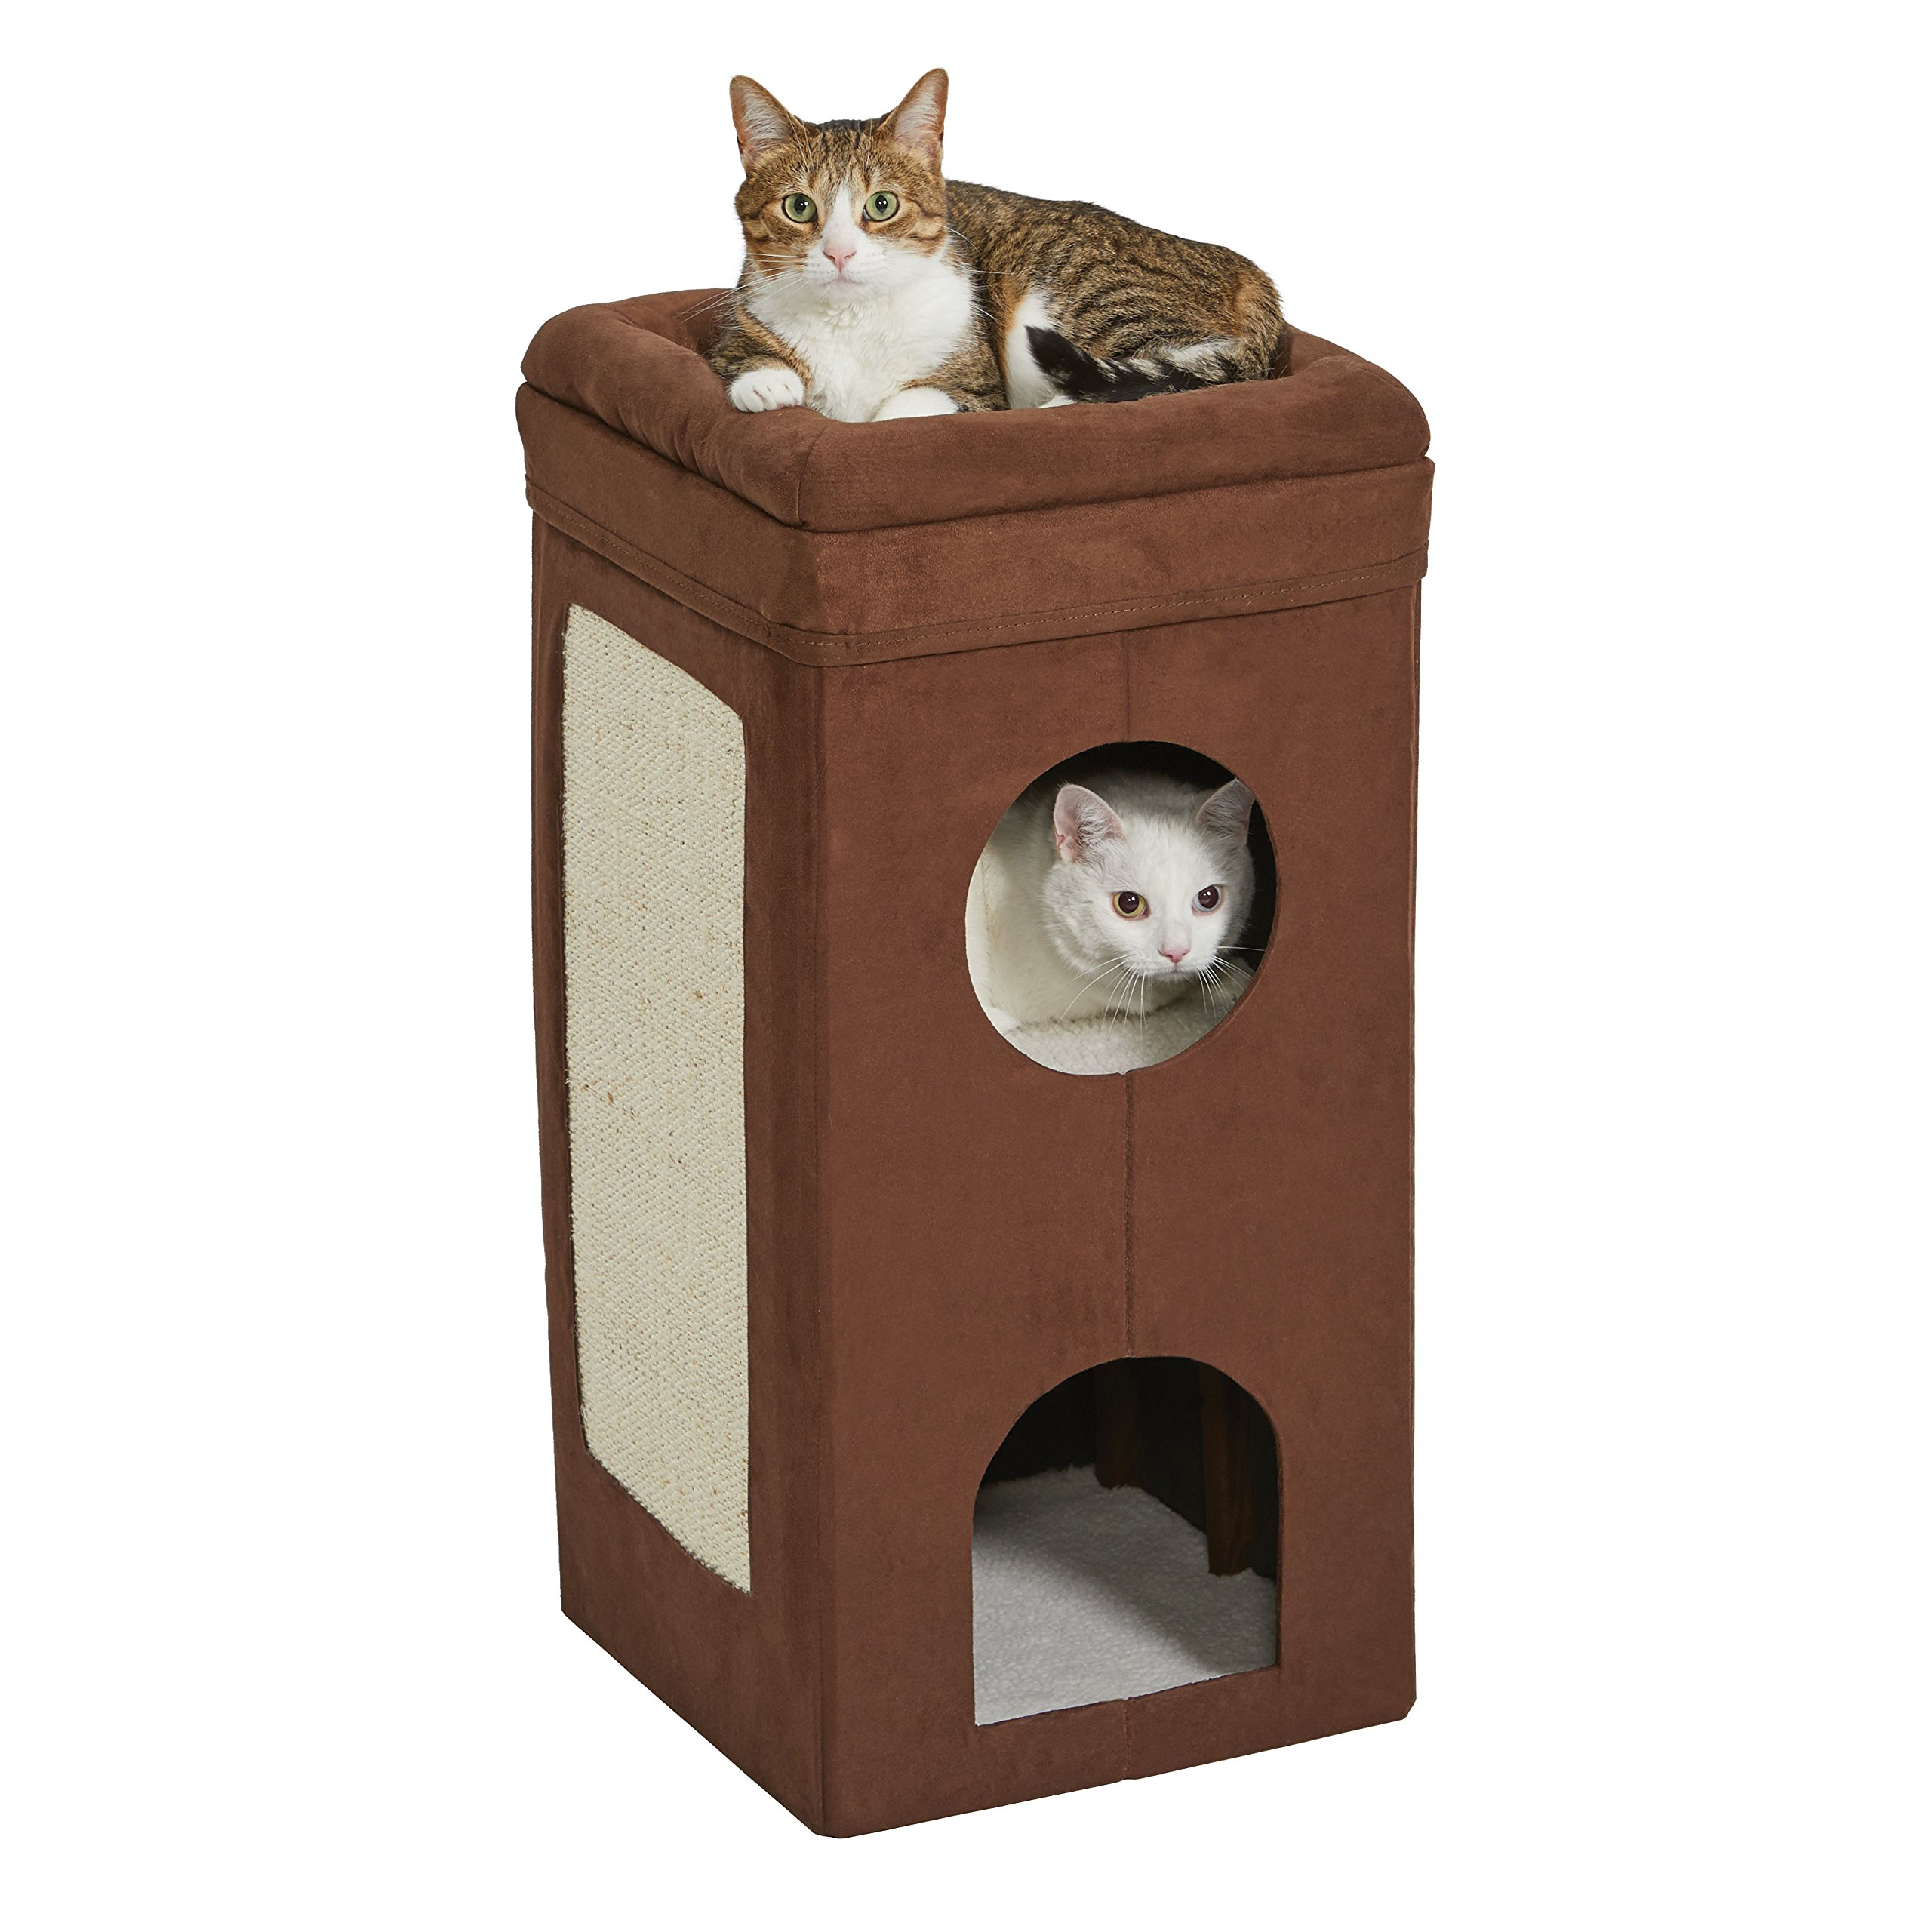 MidWest Homes for Pets Cat Condo | Tri-Level Design in Brown Faux Suede & Synthetic Sheepskin | 14.6L x 14.72W x 30.39H Inches by MidWest Homes for Pets